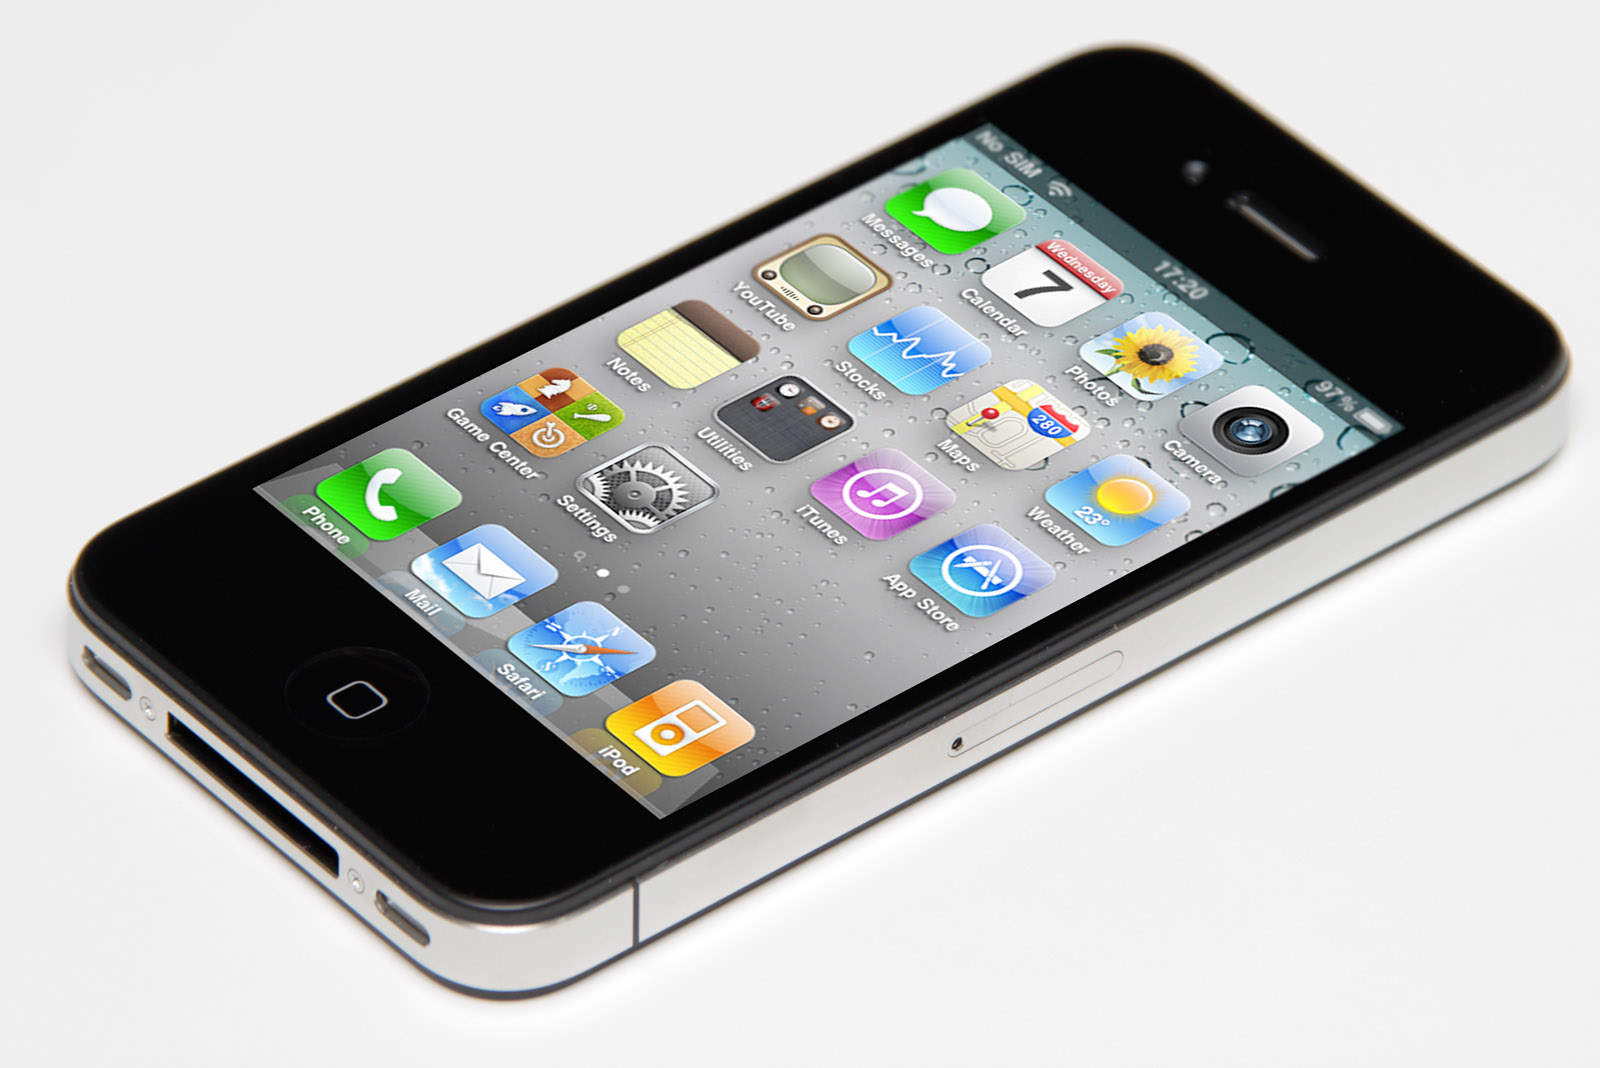 Next year's iPhone could resemble the classic iPhone 4.